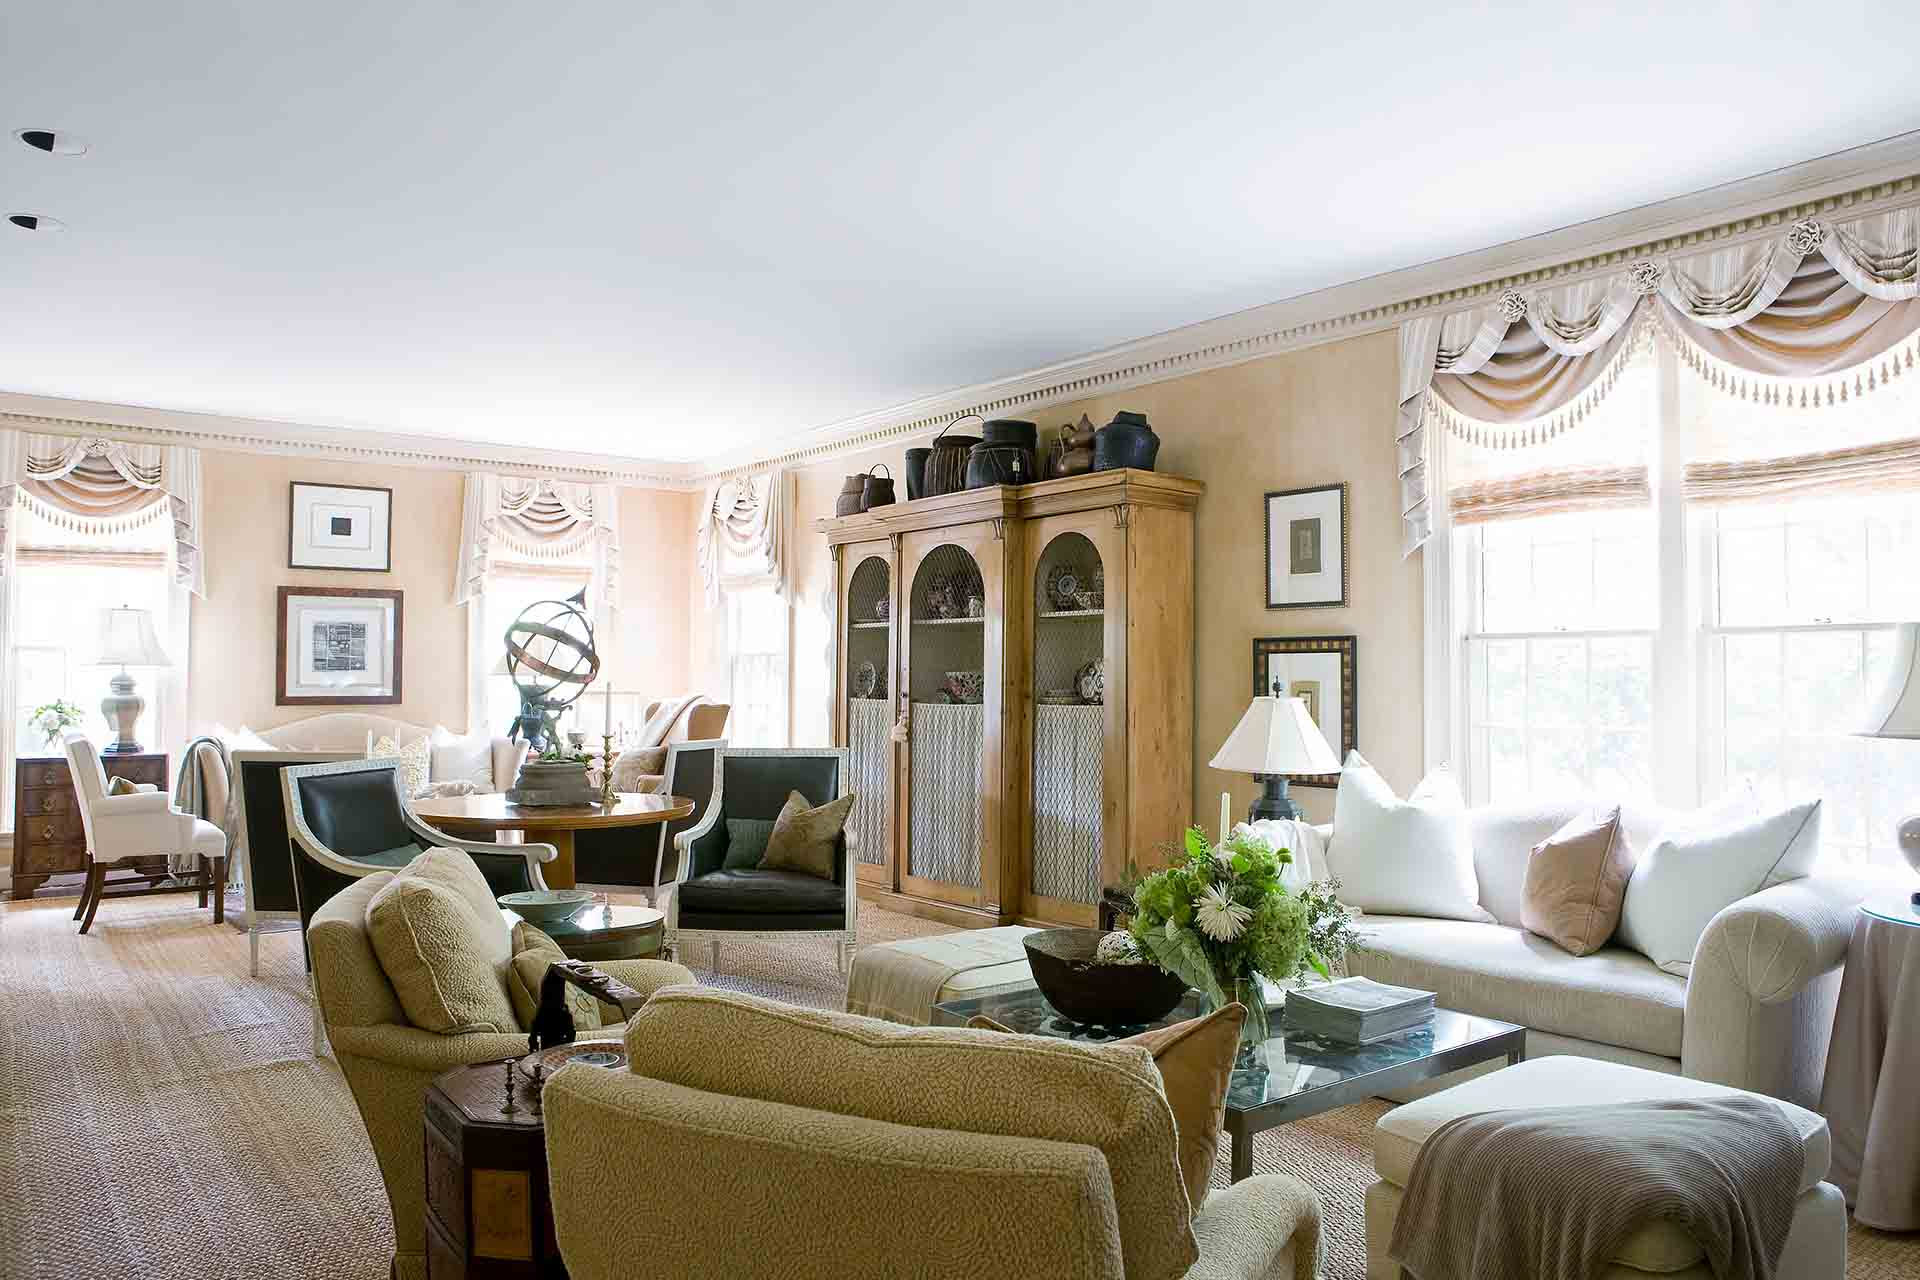 TBD - Belle Meade - R.Higgins Interiors